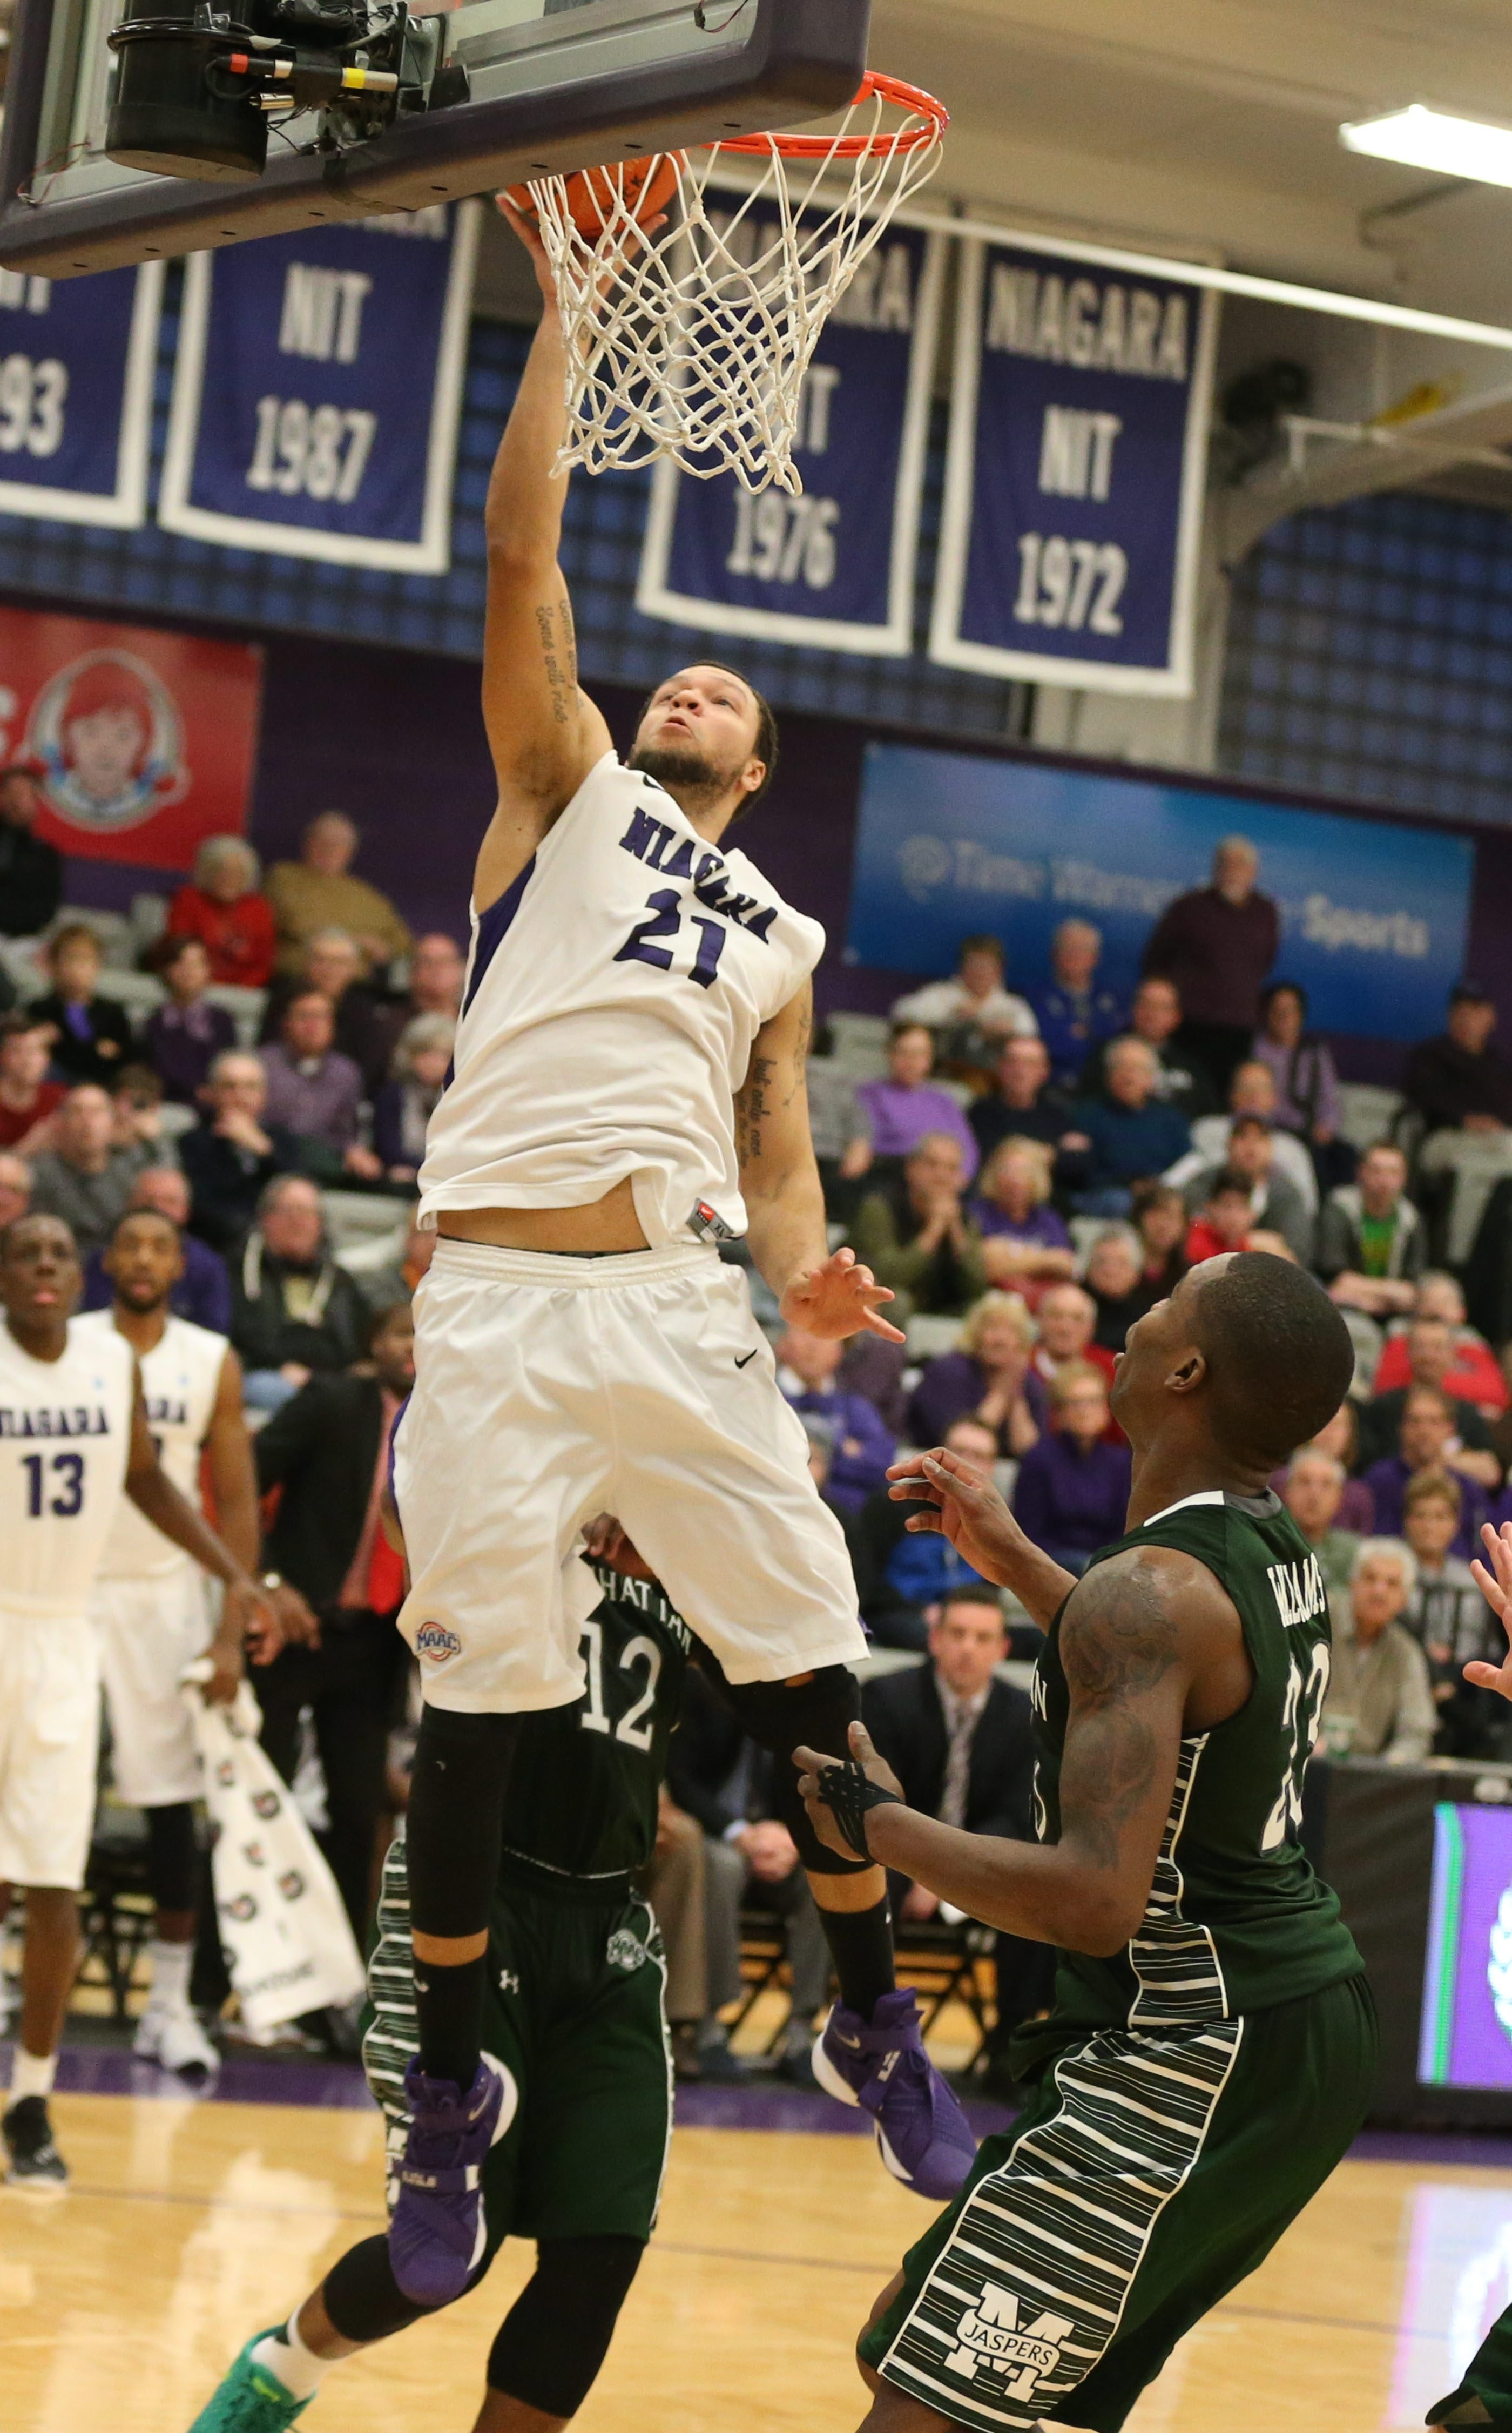 Niagara University forward Justin Satchell scores the game-winning basket on a tip-in with 1.2 seconds left to beat Manhattan College on Saturday.